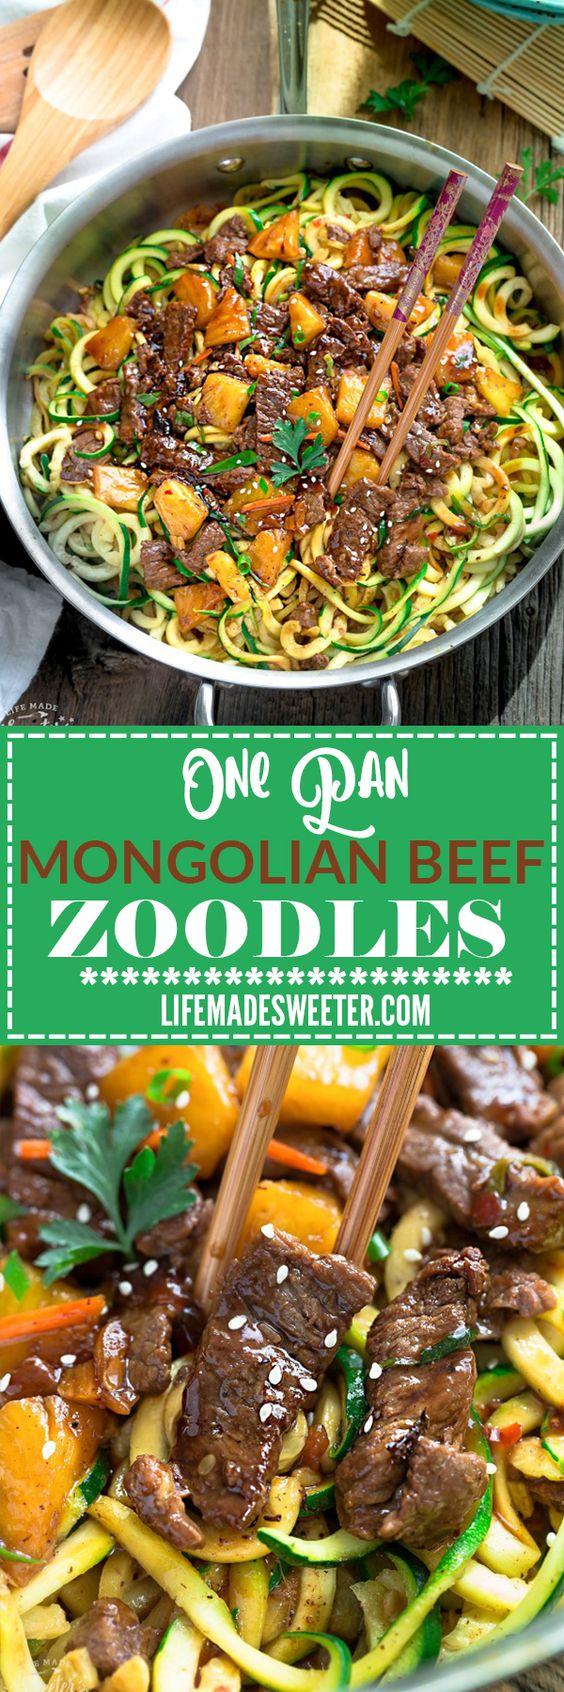 One Pan Mongolian Beef Zoodles make the perfect easy grain free, low carb weeknight meal! Best of all, it comes together in under 30 minutes with just one pot to clean! So much better and healthier than takeout!!